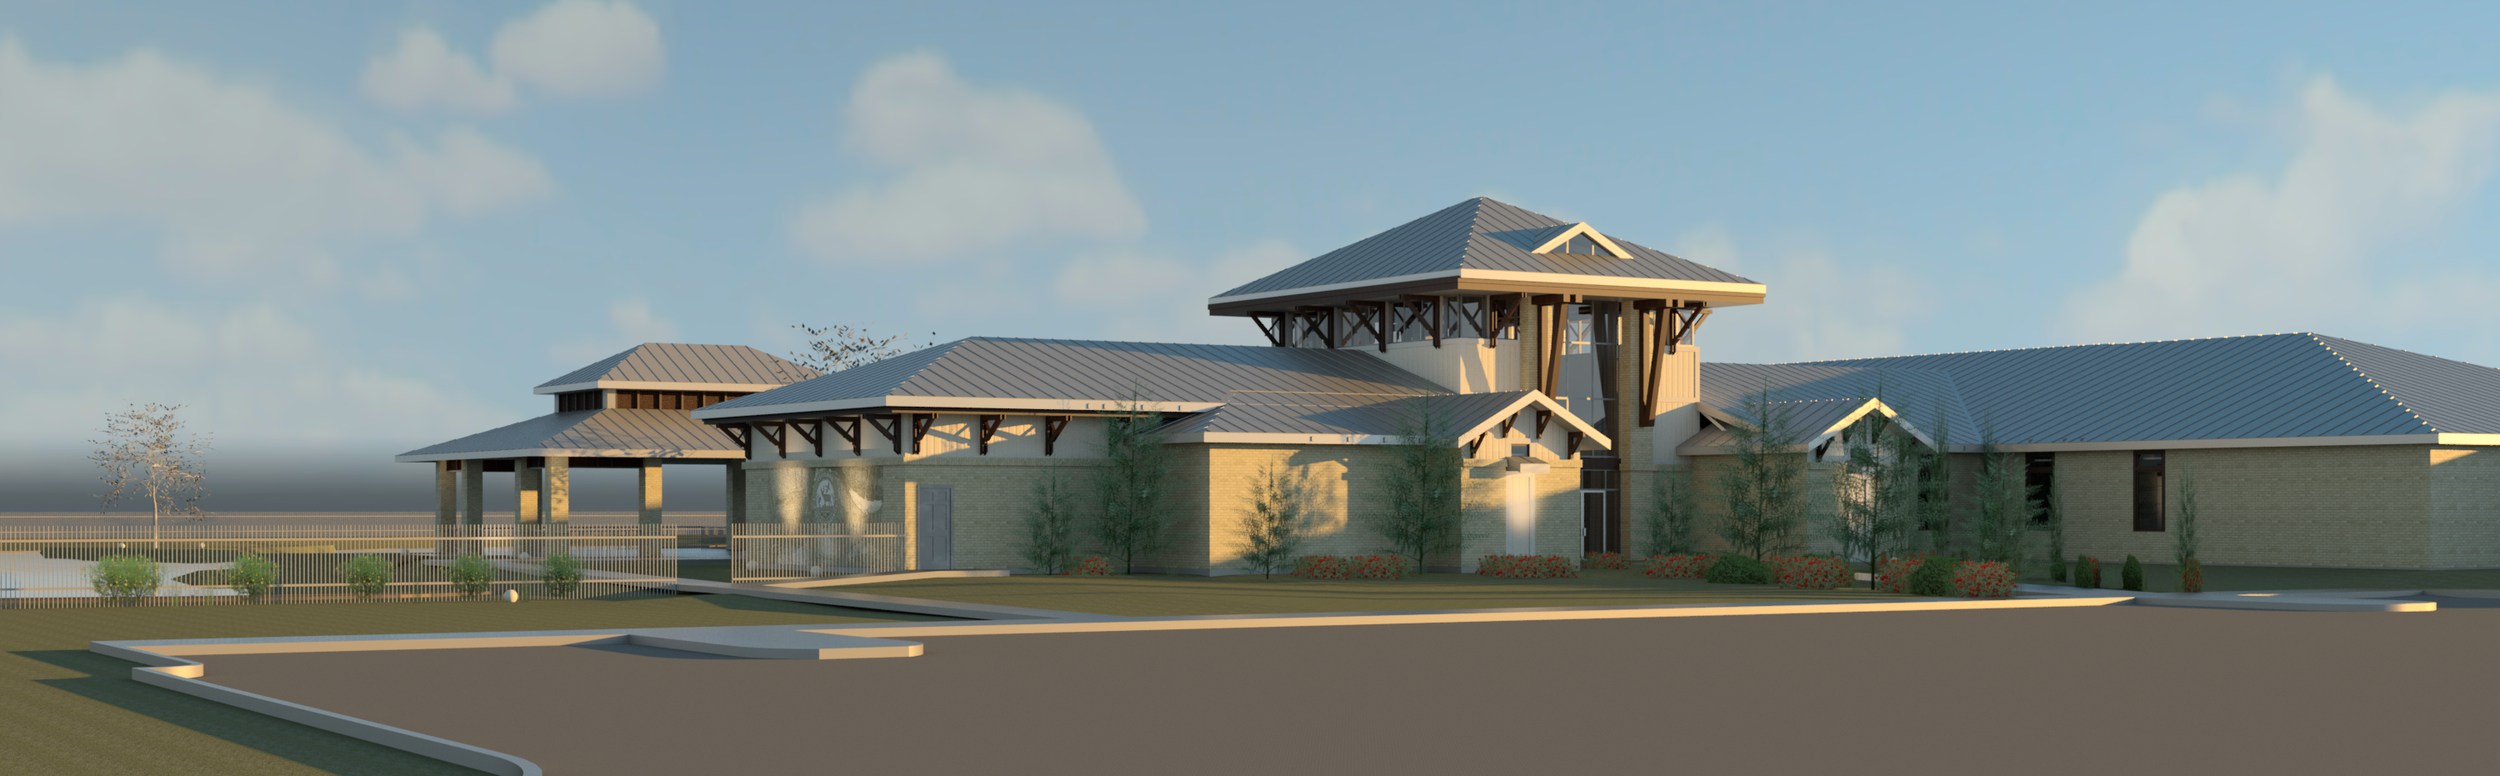 14003_Model_-_Main.rvt_2014-Aug-08_01-15-38PM-000_3D_View_7.png